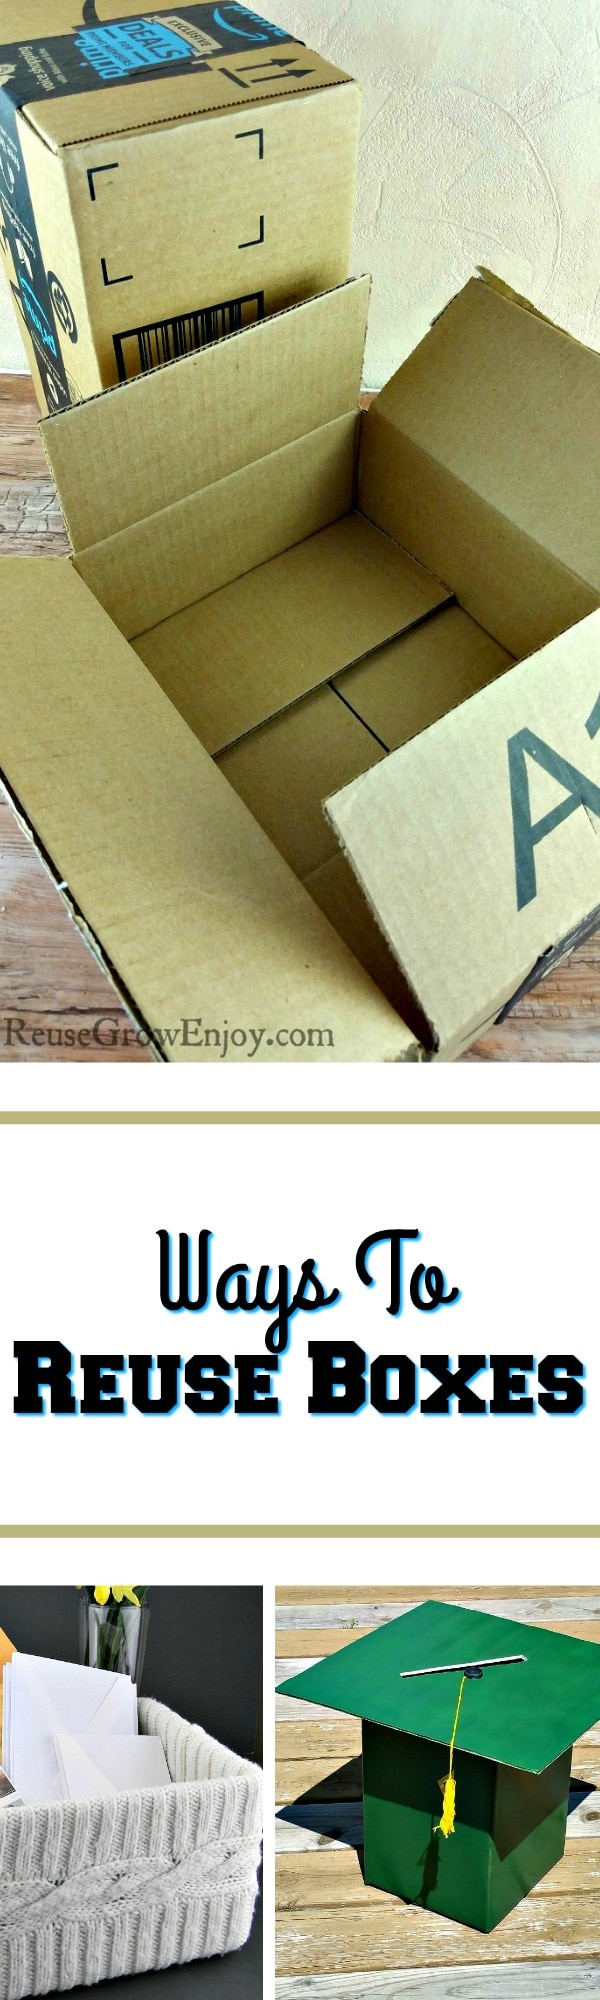 Have a bunch of boxes and not sure what to do with them? I am going to share some awesome ways that you can recycle boxes right at home!